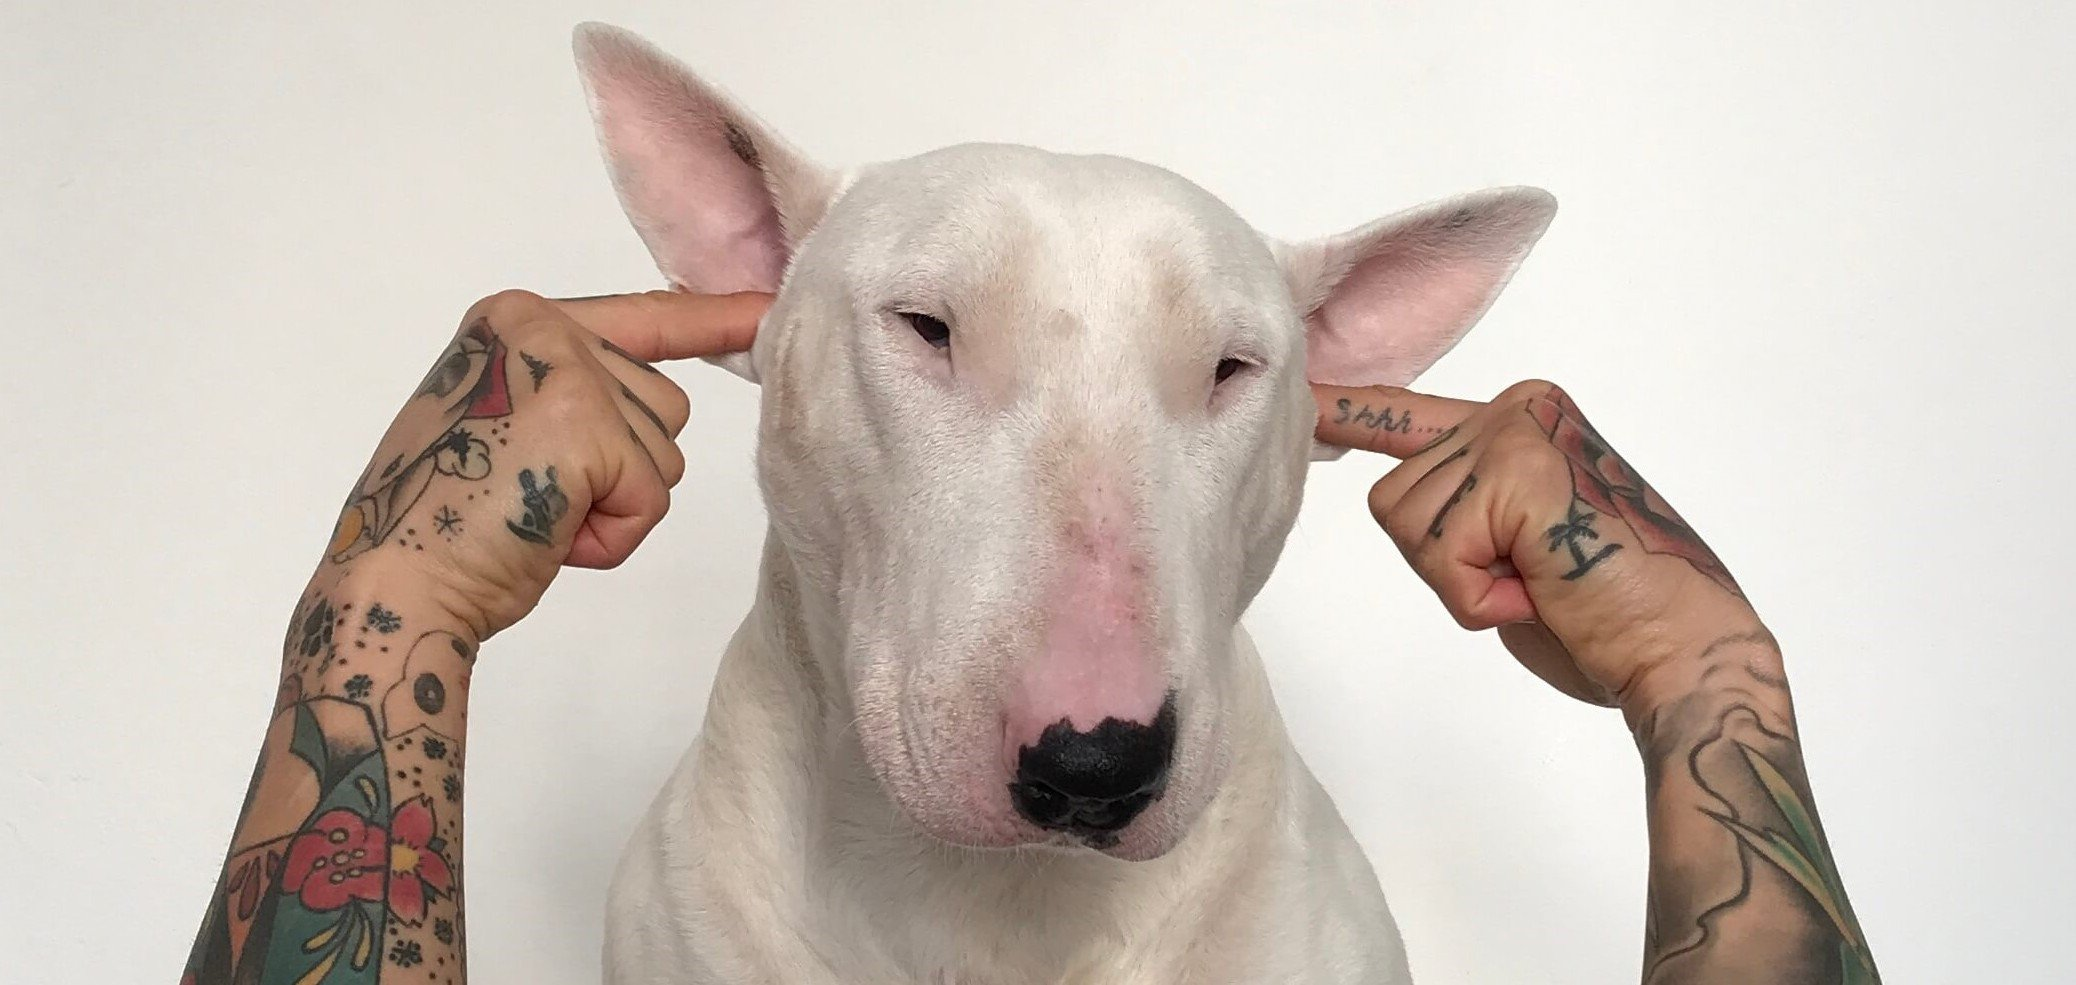 Dog with man's fingers in ears